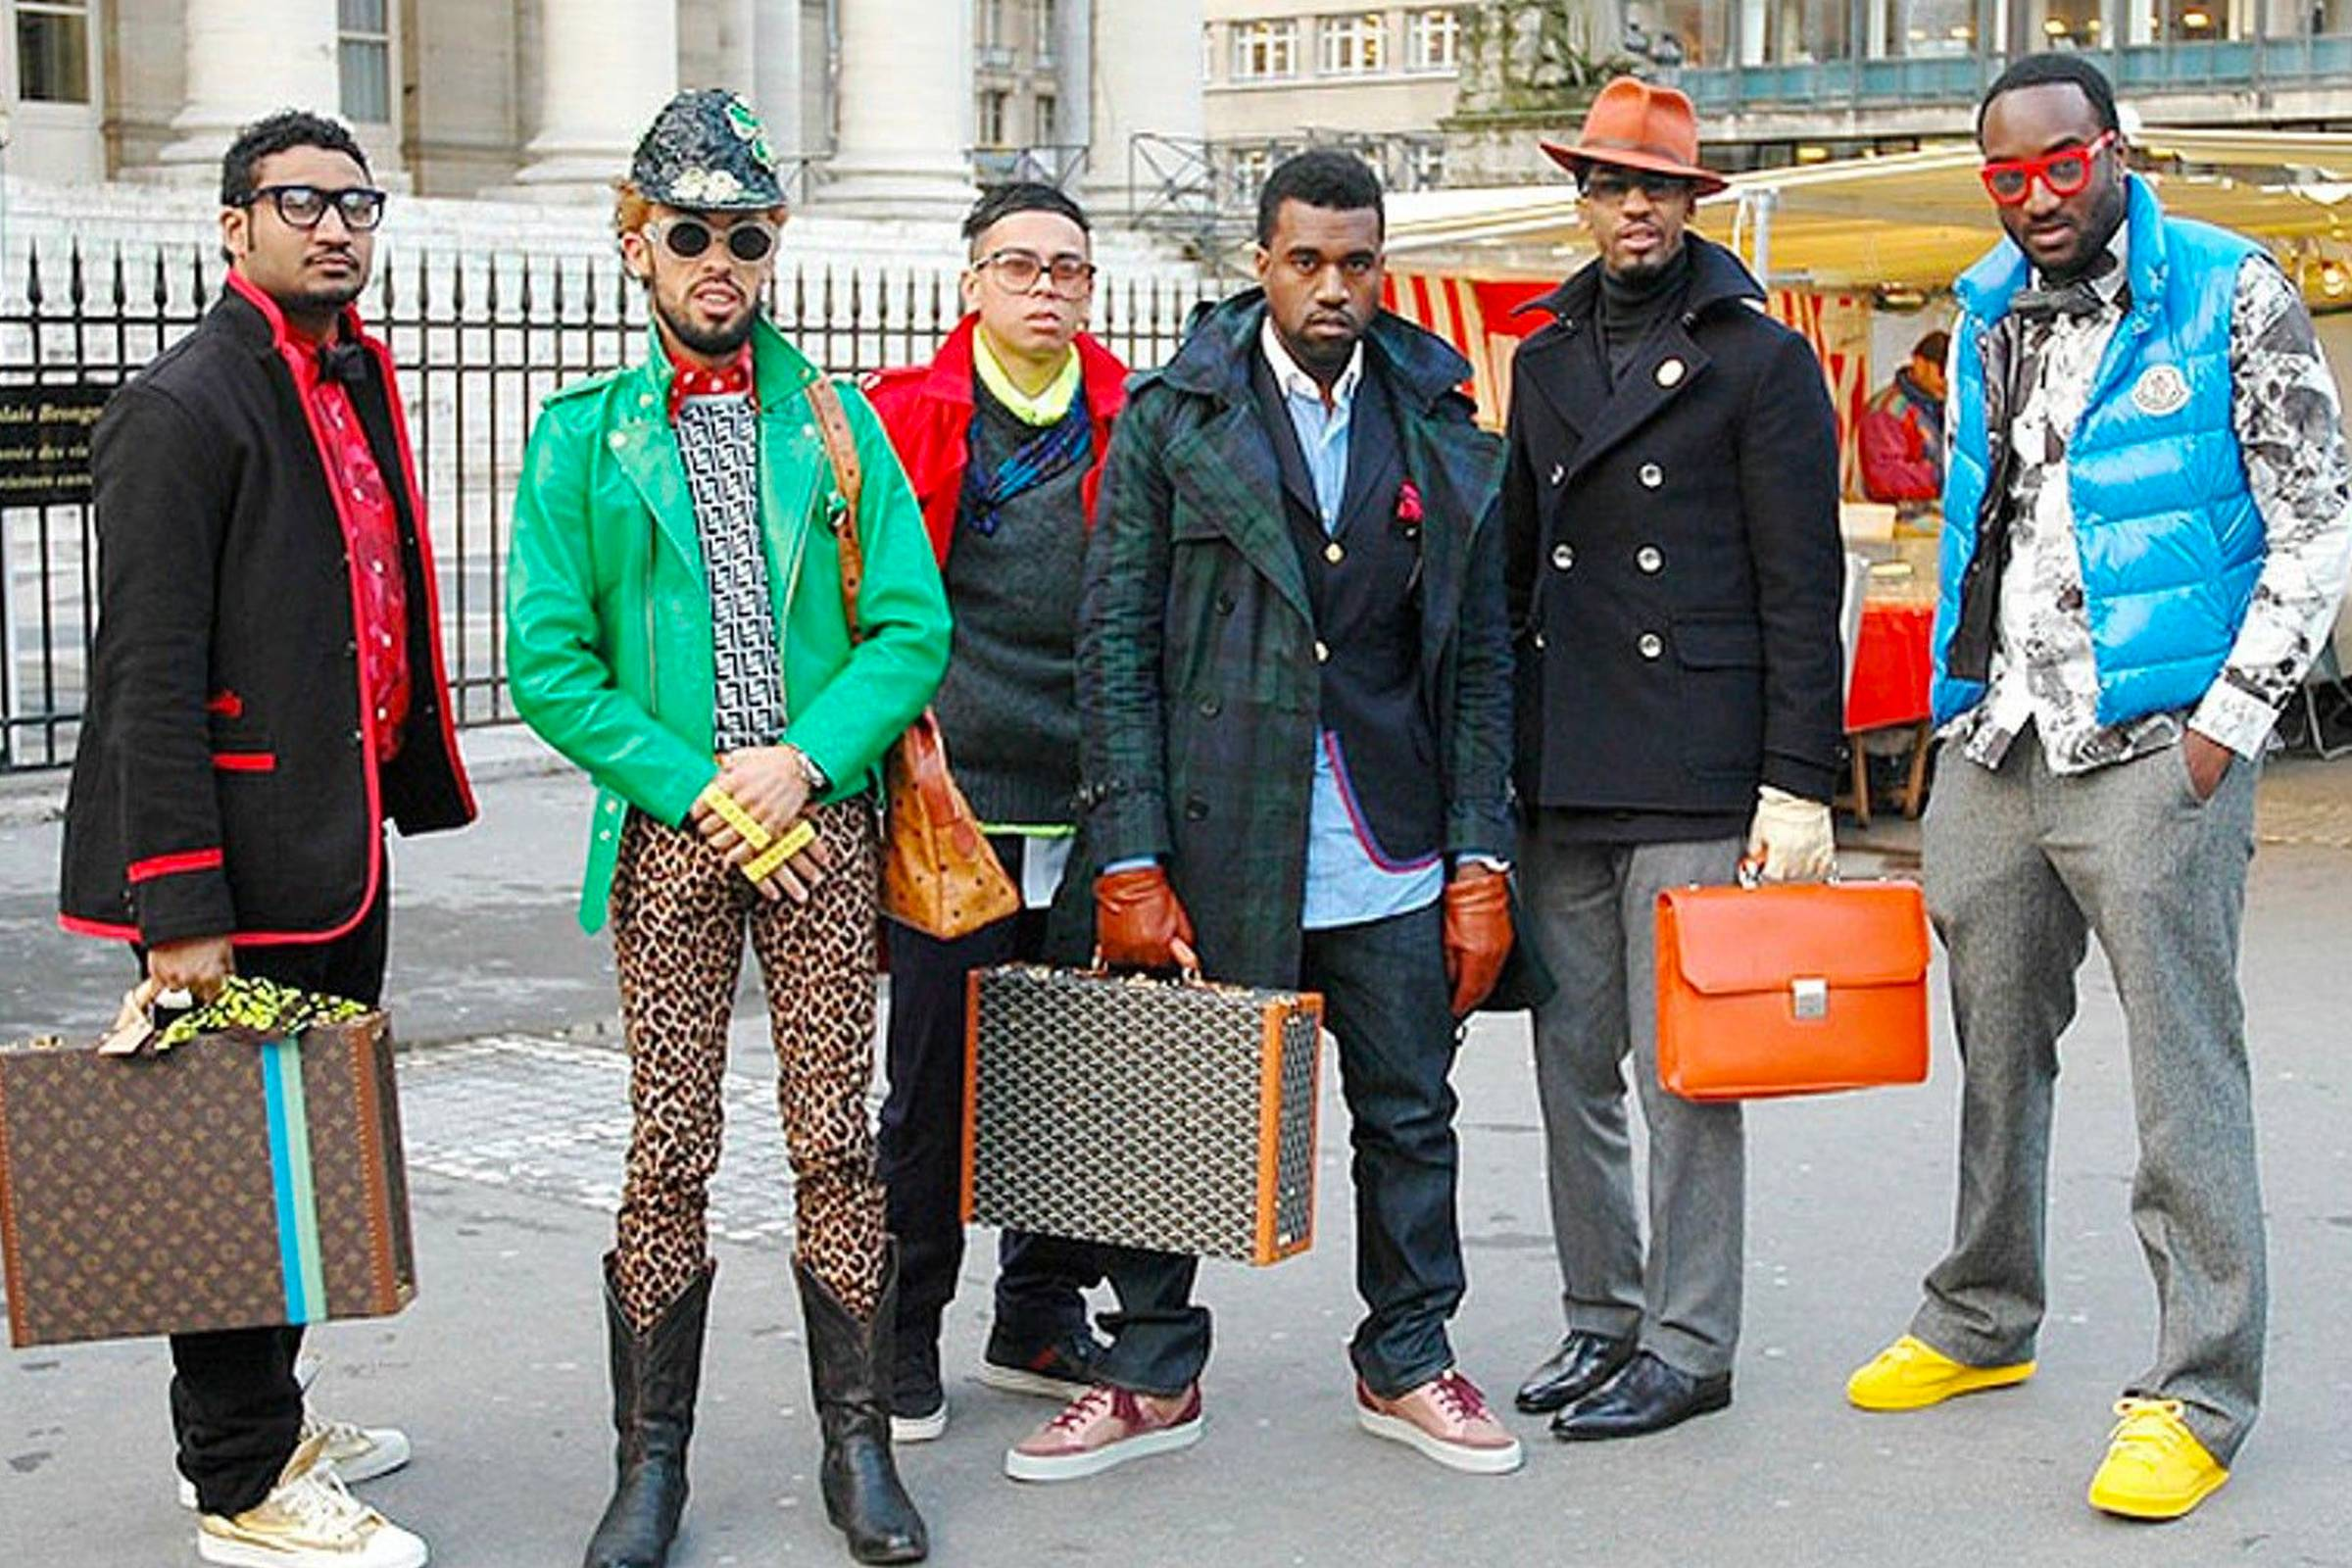 Kanye West holds a Goyard briefcase at the center of this infamous street style photo, shot by Tommy Ton in 2009